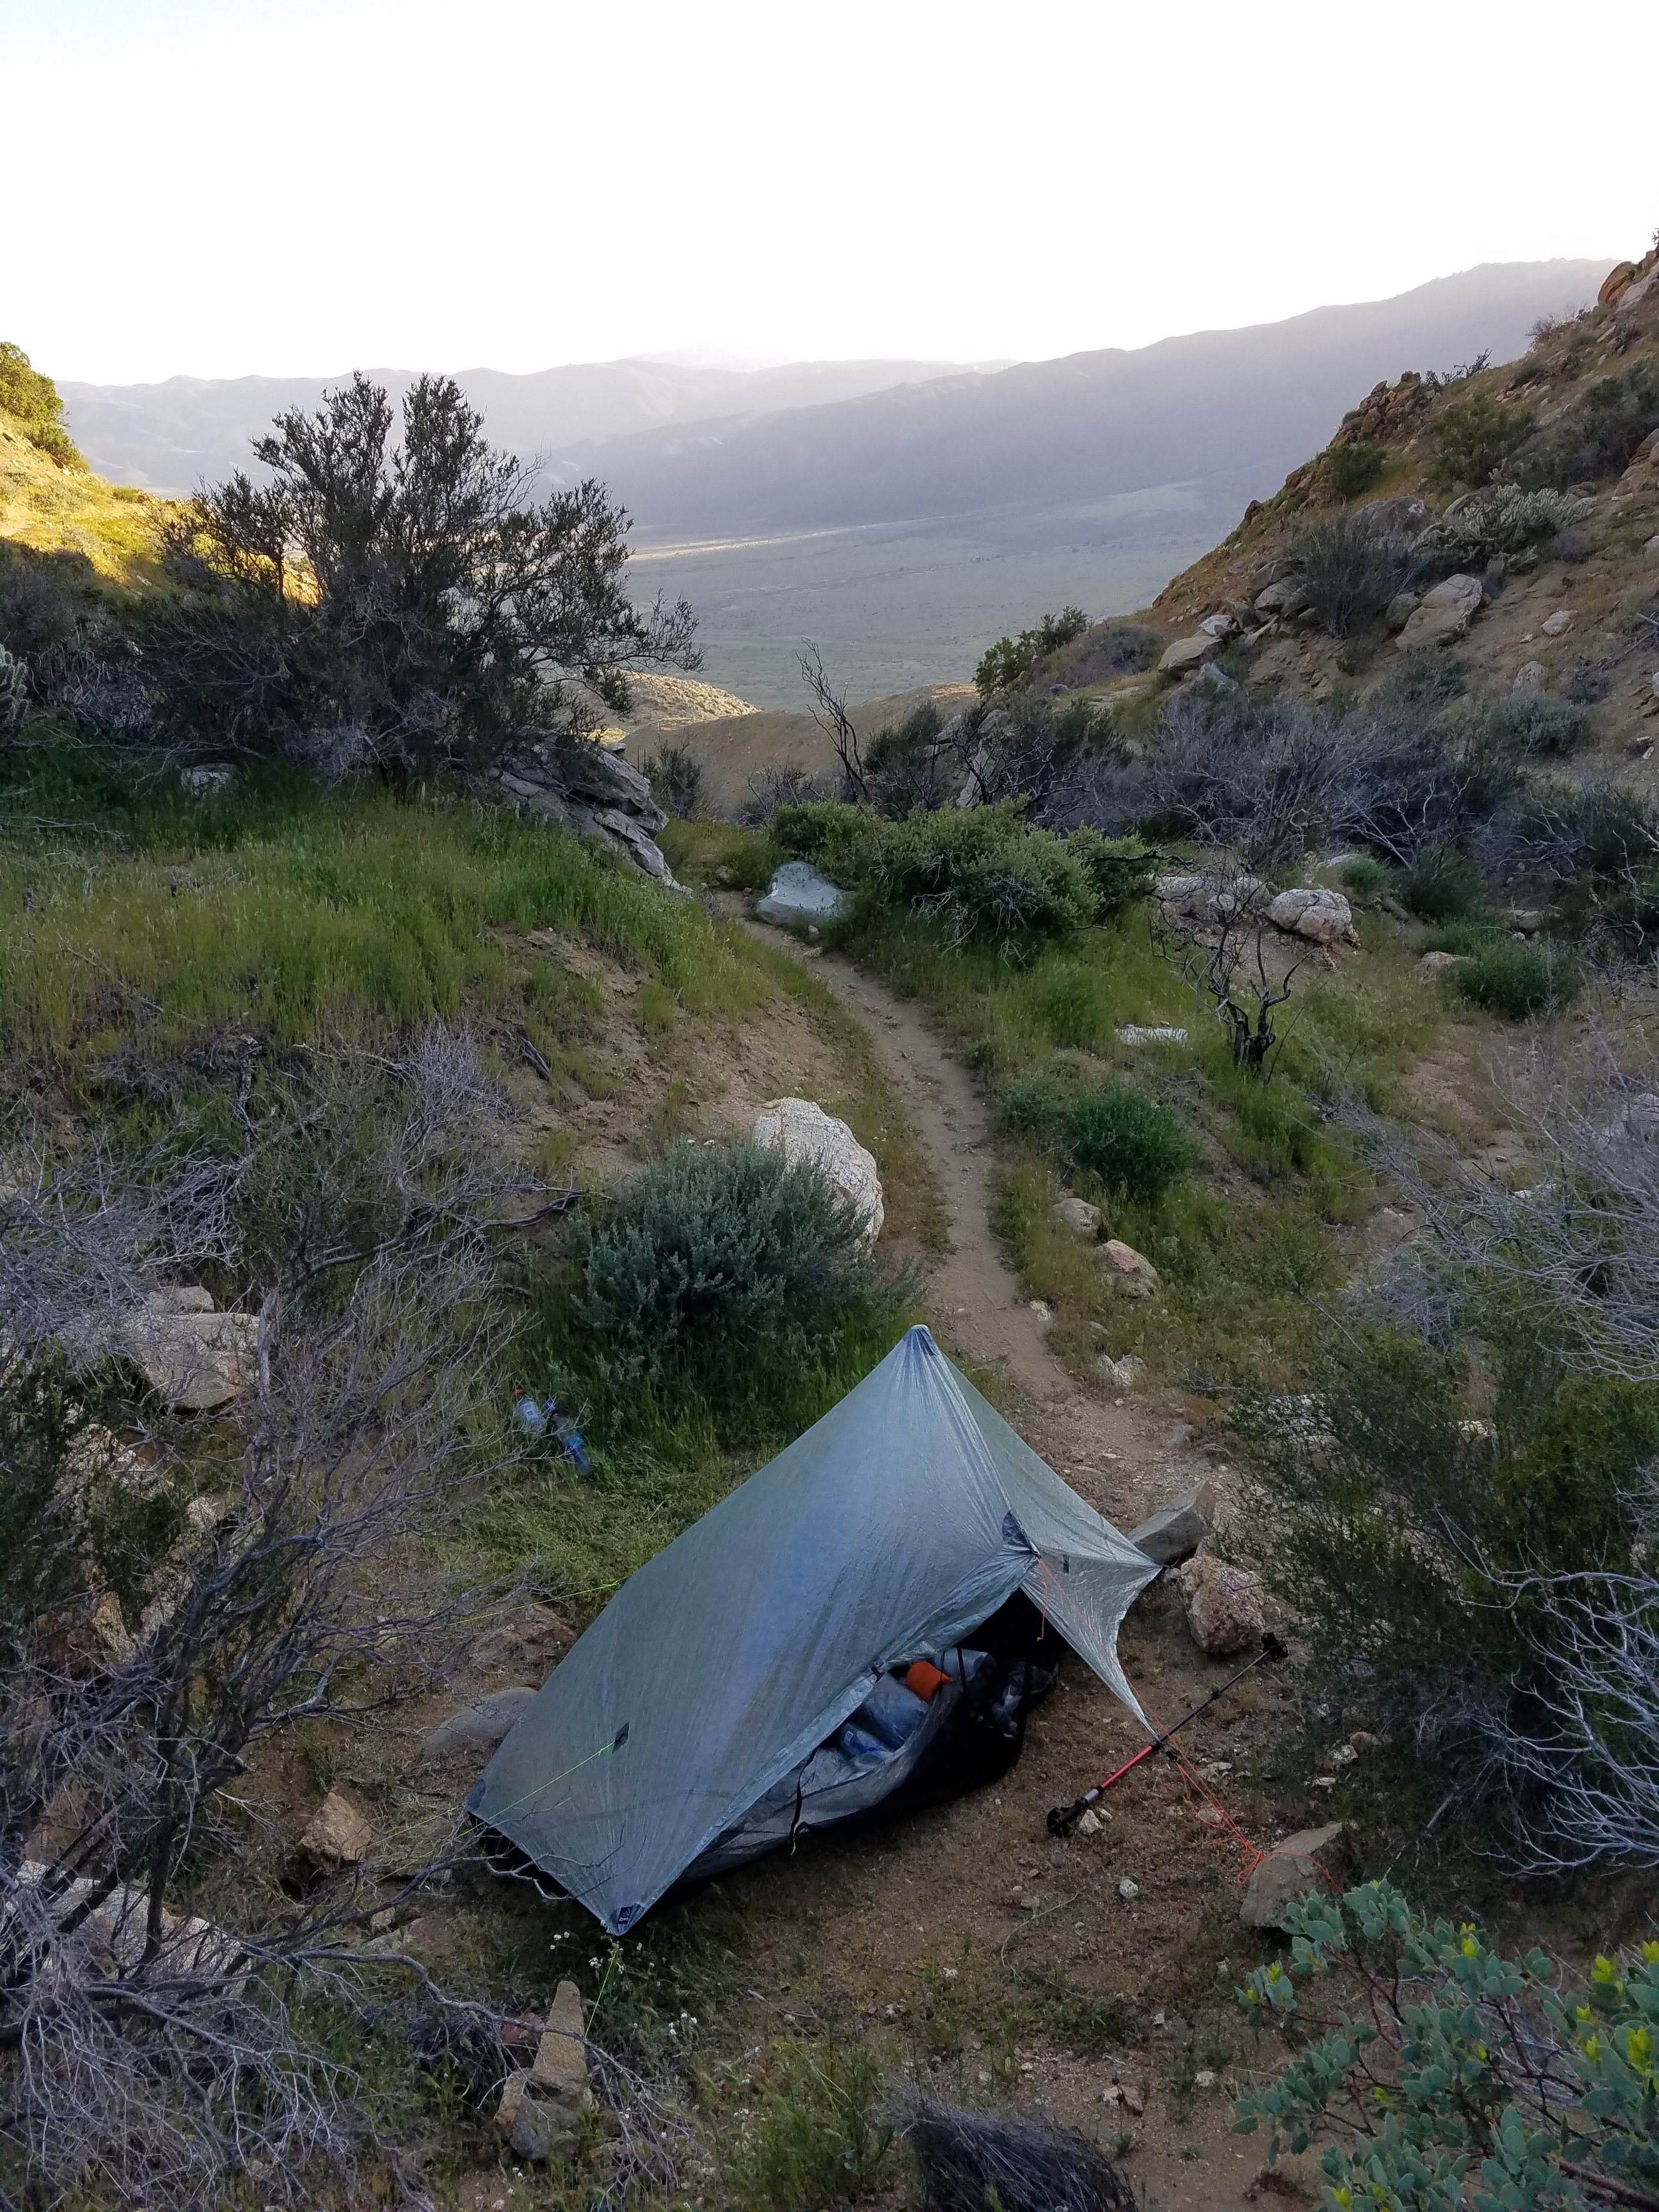 The windy bivy site just off the trail.